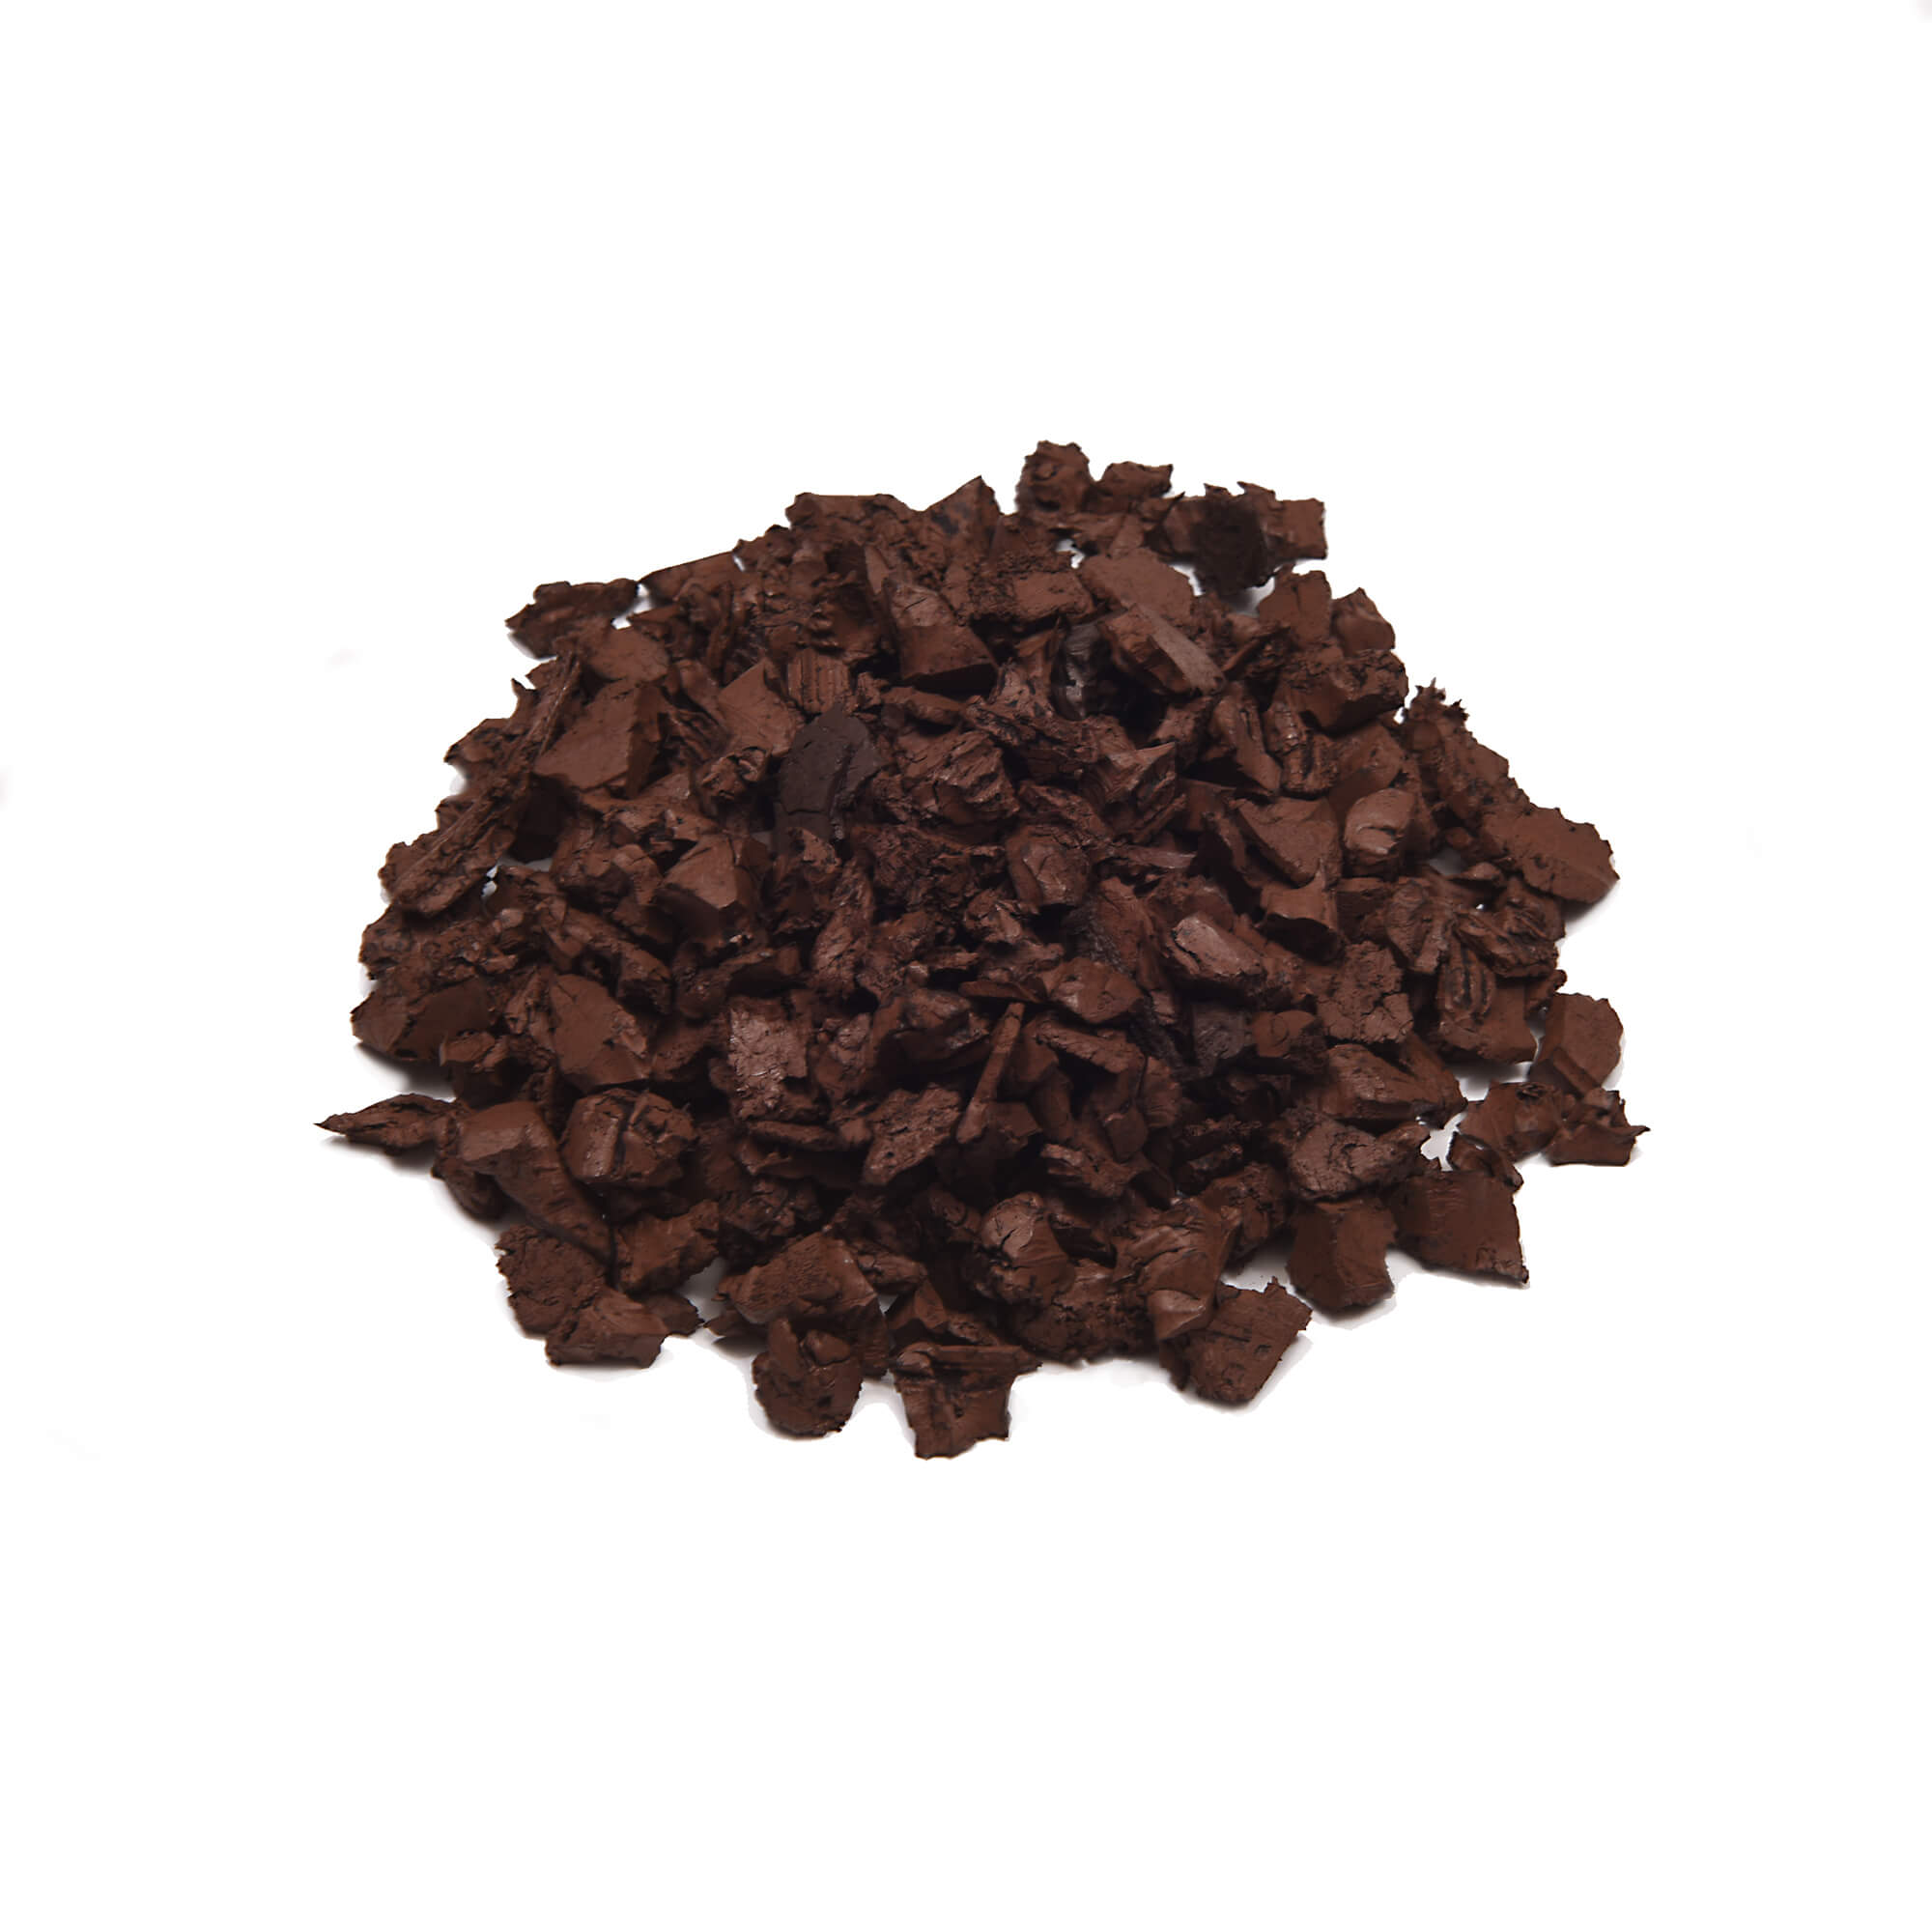 saddle brown color mulch